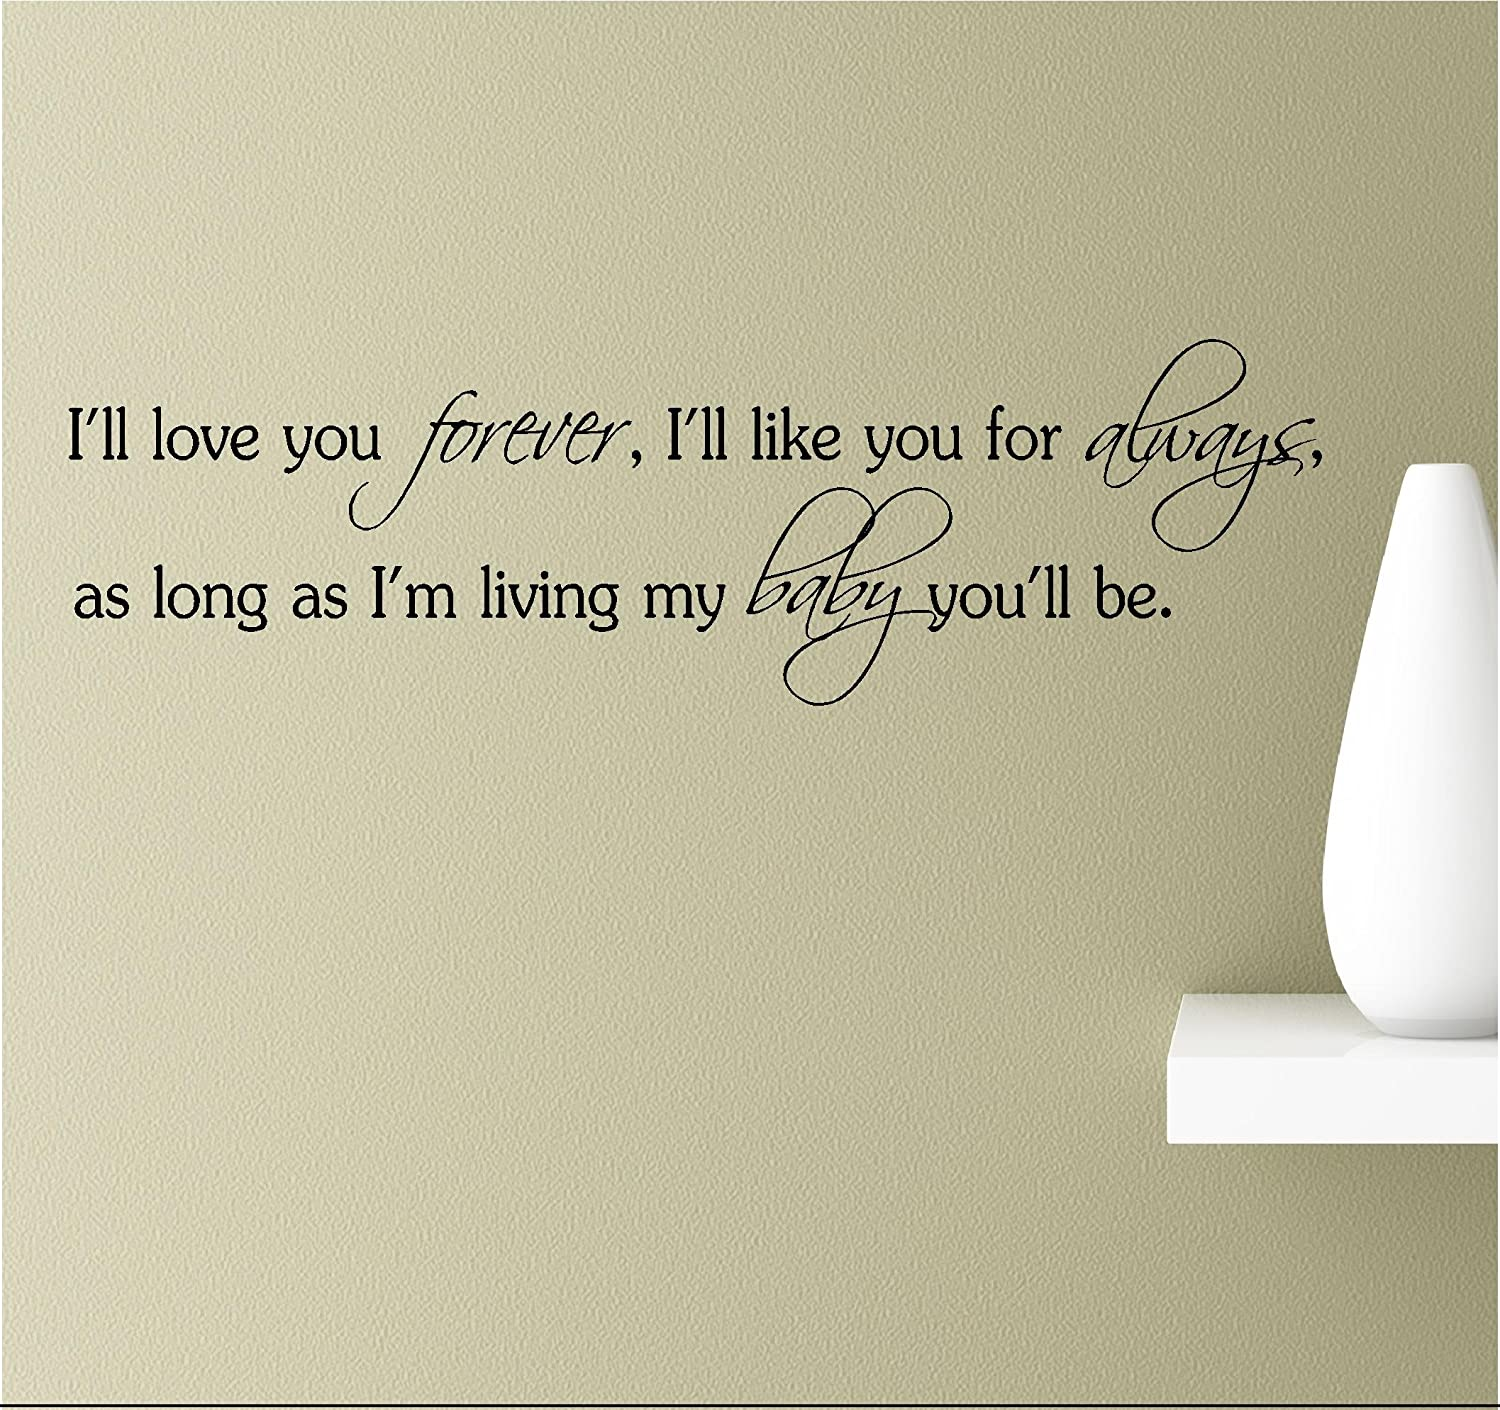 I'll Love You Forever, I'll Like You for Always, as Long as I'm Living My Baby You'll be. Vinyl Wall Art Inspirational Quotes Decal Sticker